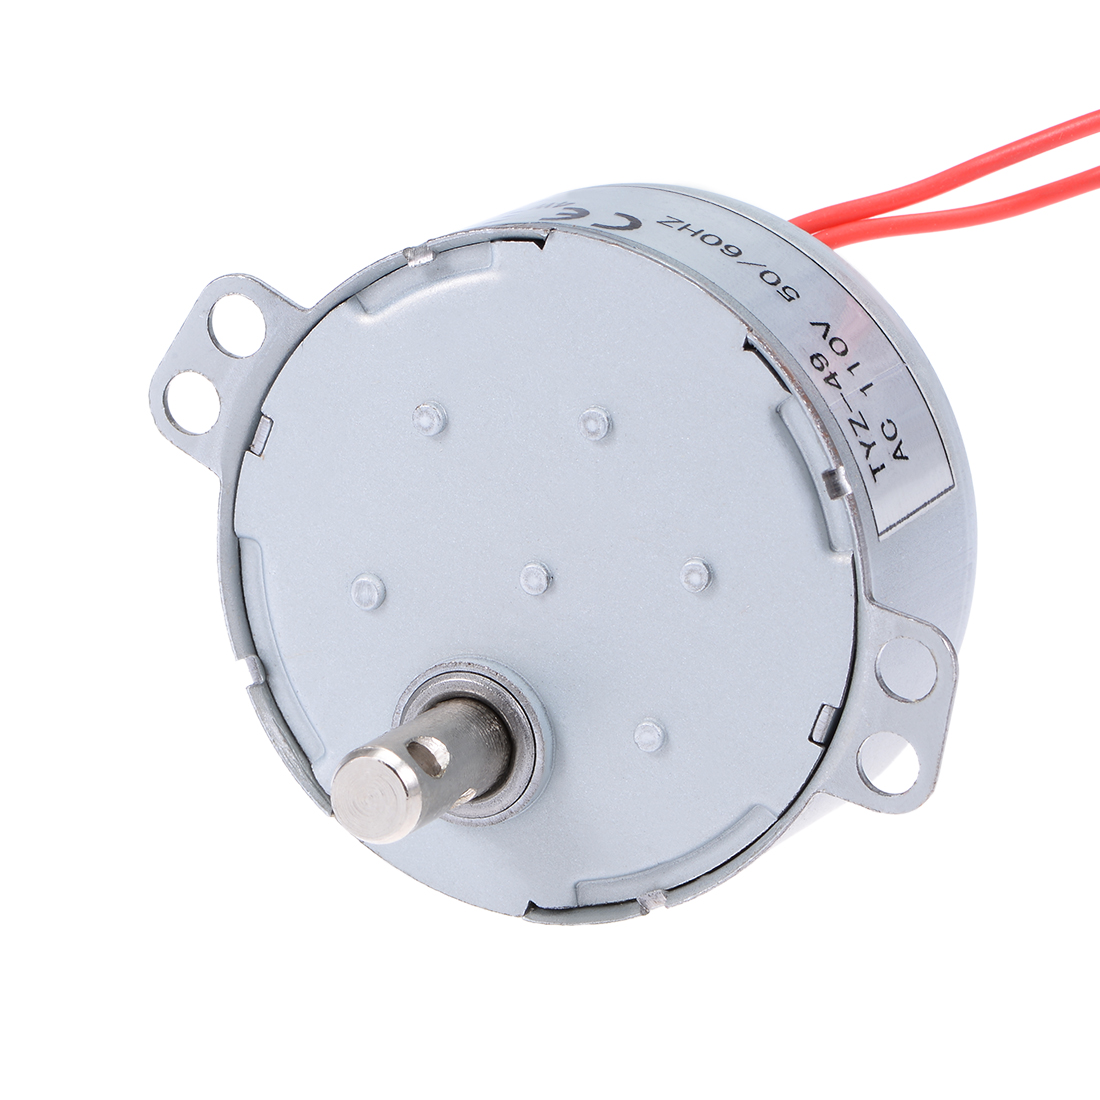 110V 50/60Hz 5RPM CW AC Synchronous Motor Turntable Gear Box for Microwave Oven